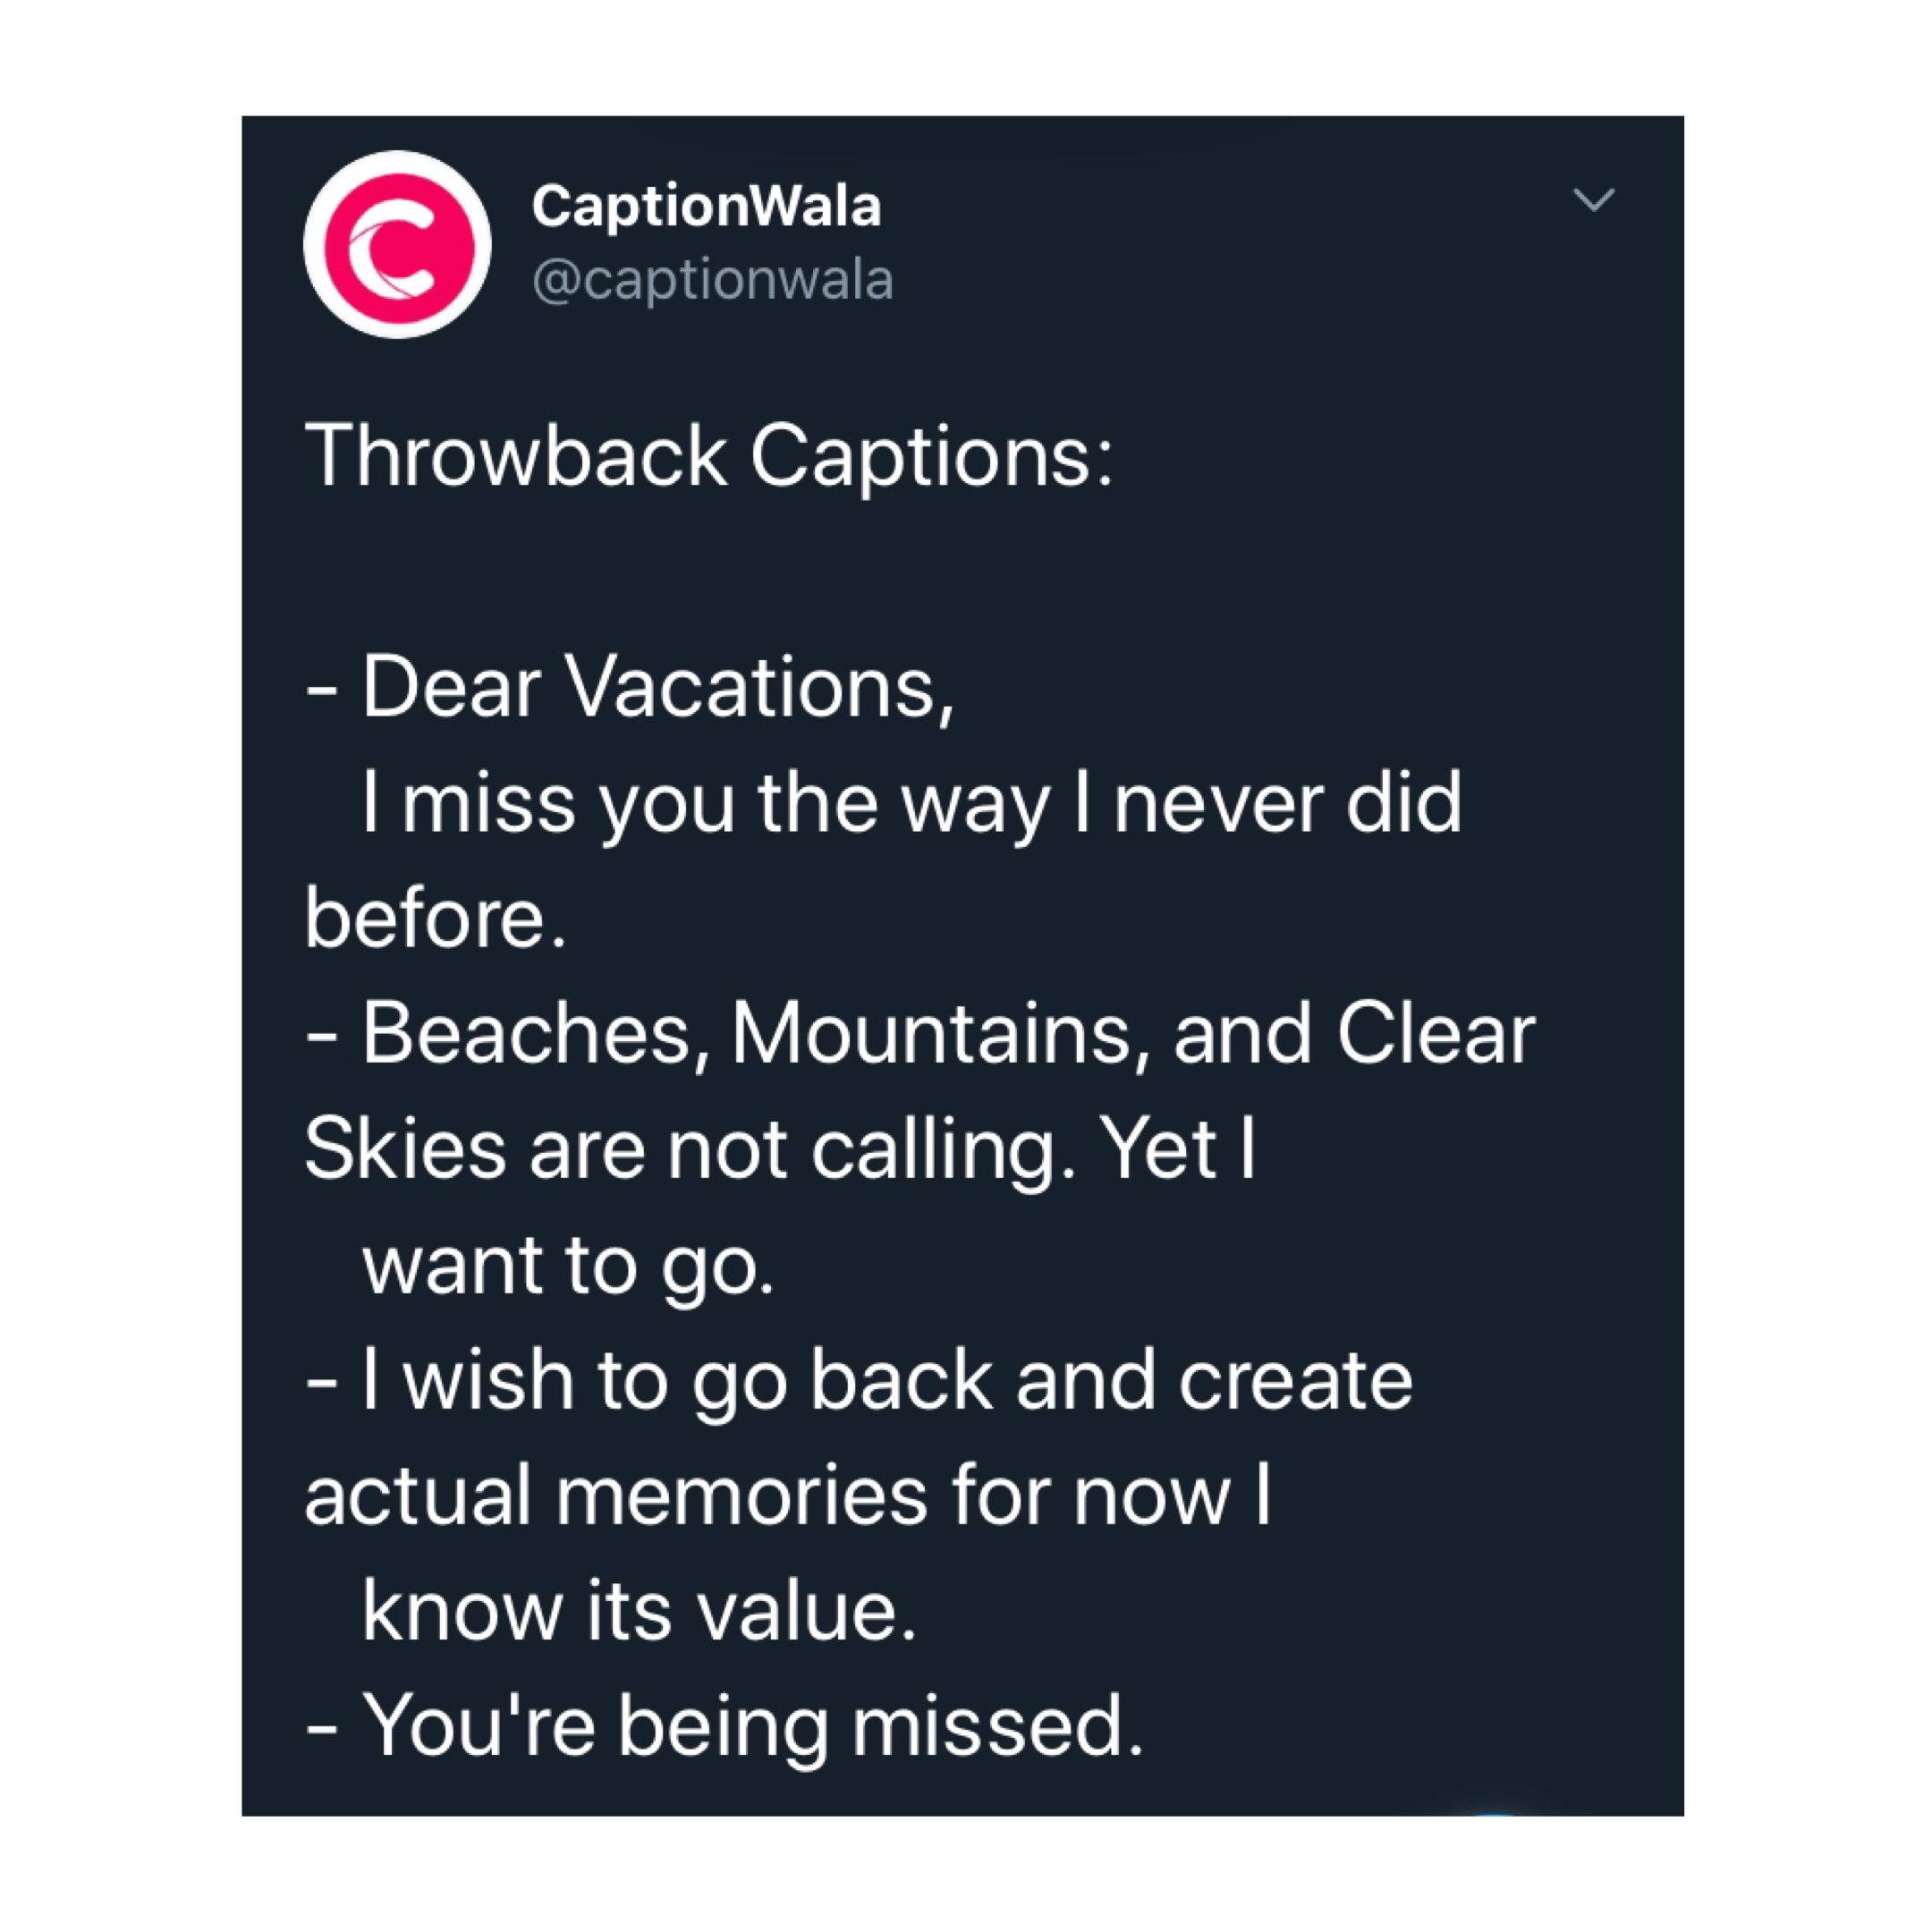 Throwback Captions Throwbackoutfits Lifebeforequarantine Throwback Throwbackthursday Throwback Quotes Witty Instagram Captions Instagram Quotes Captions